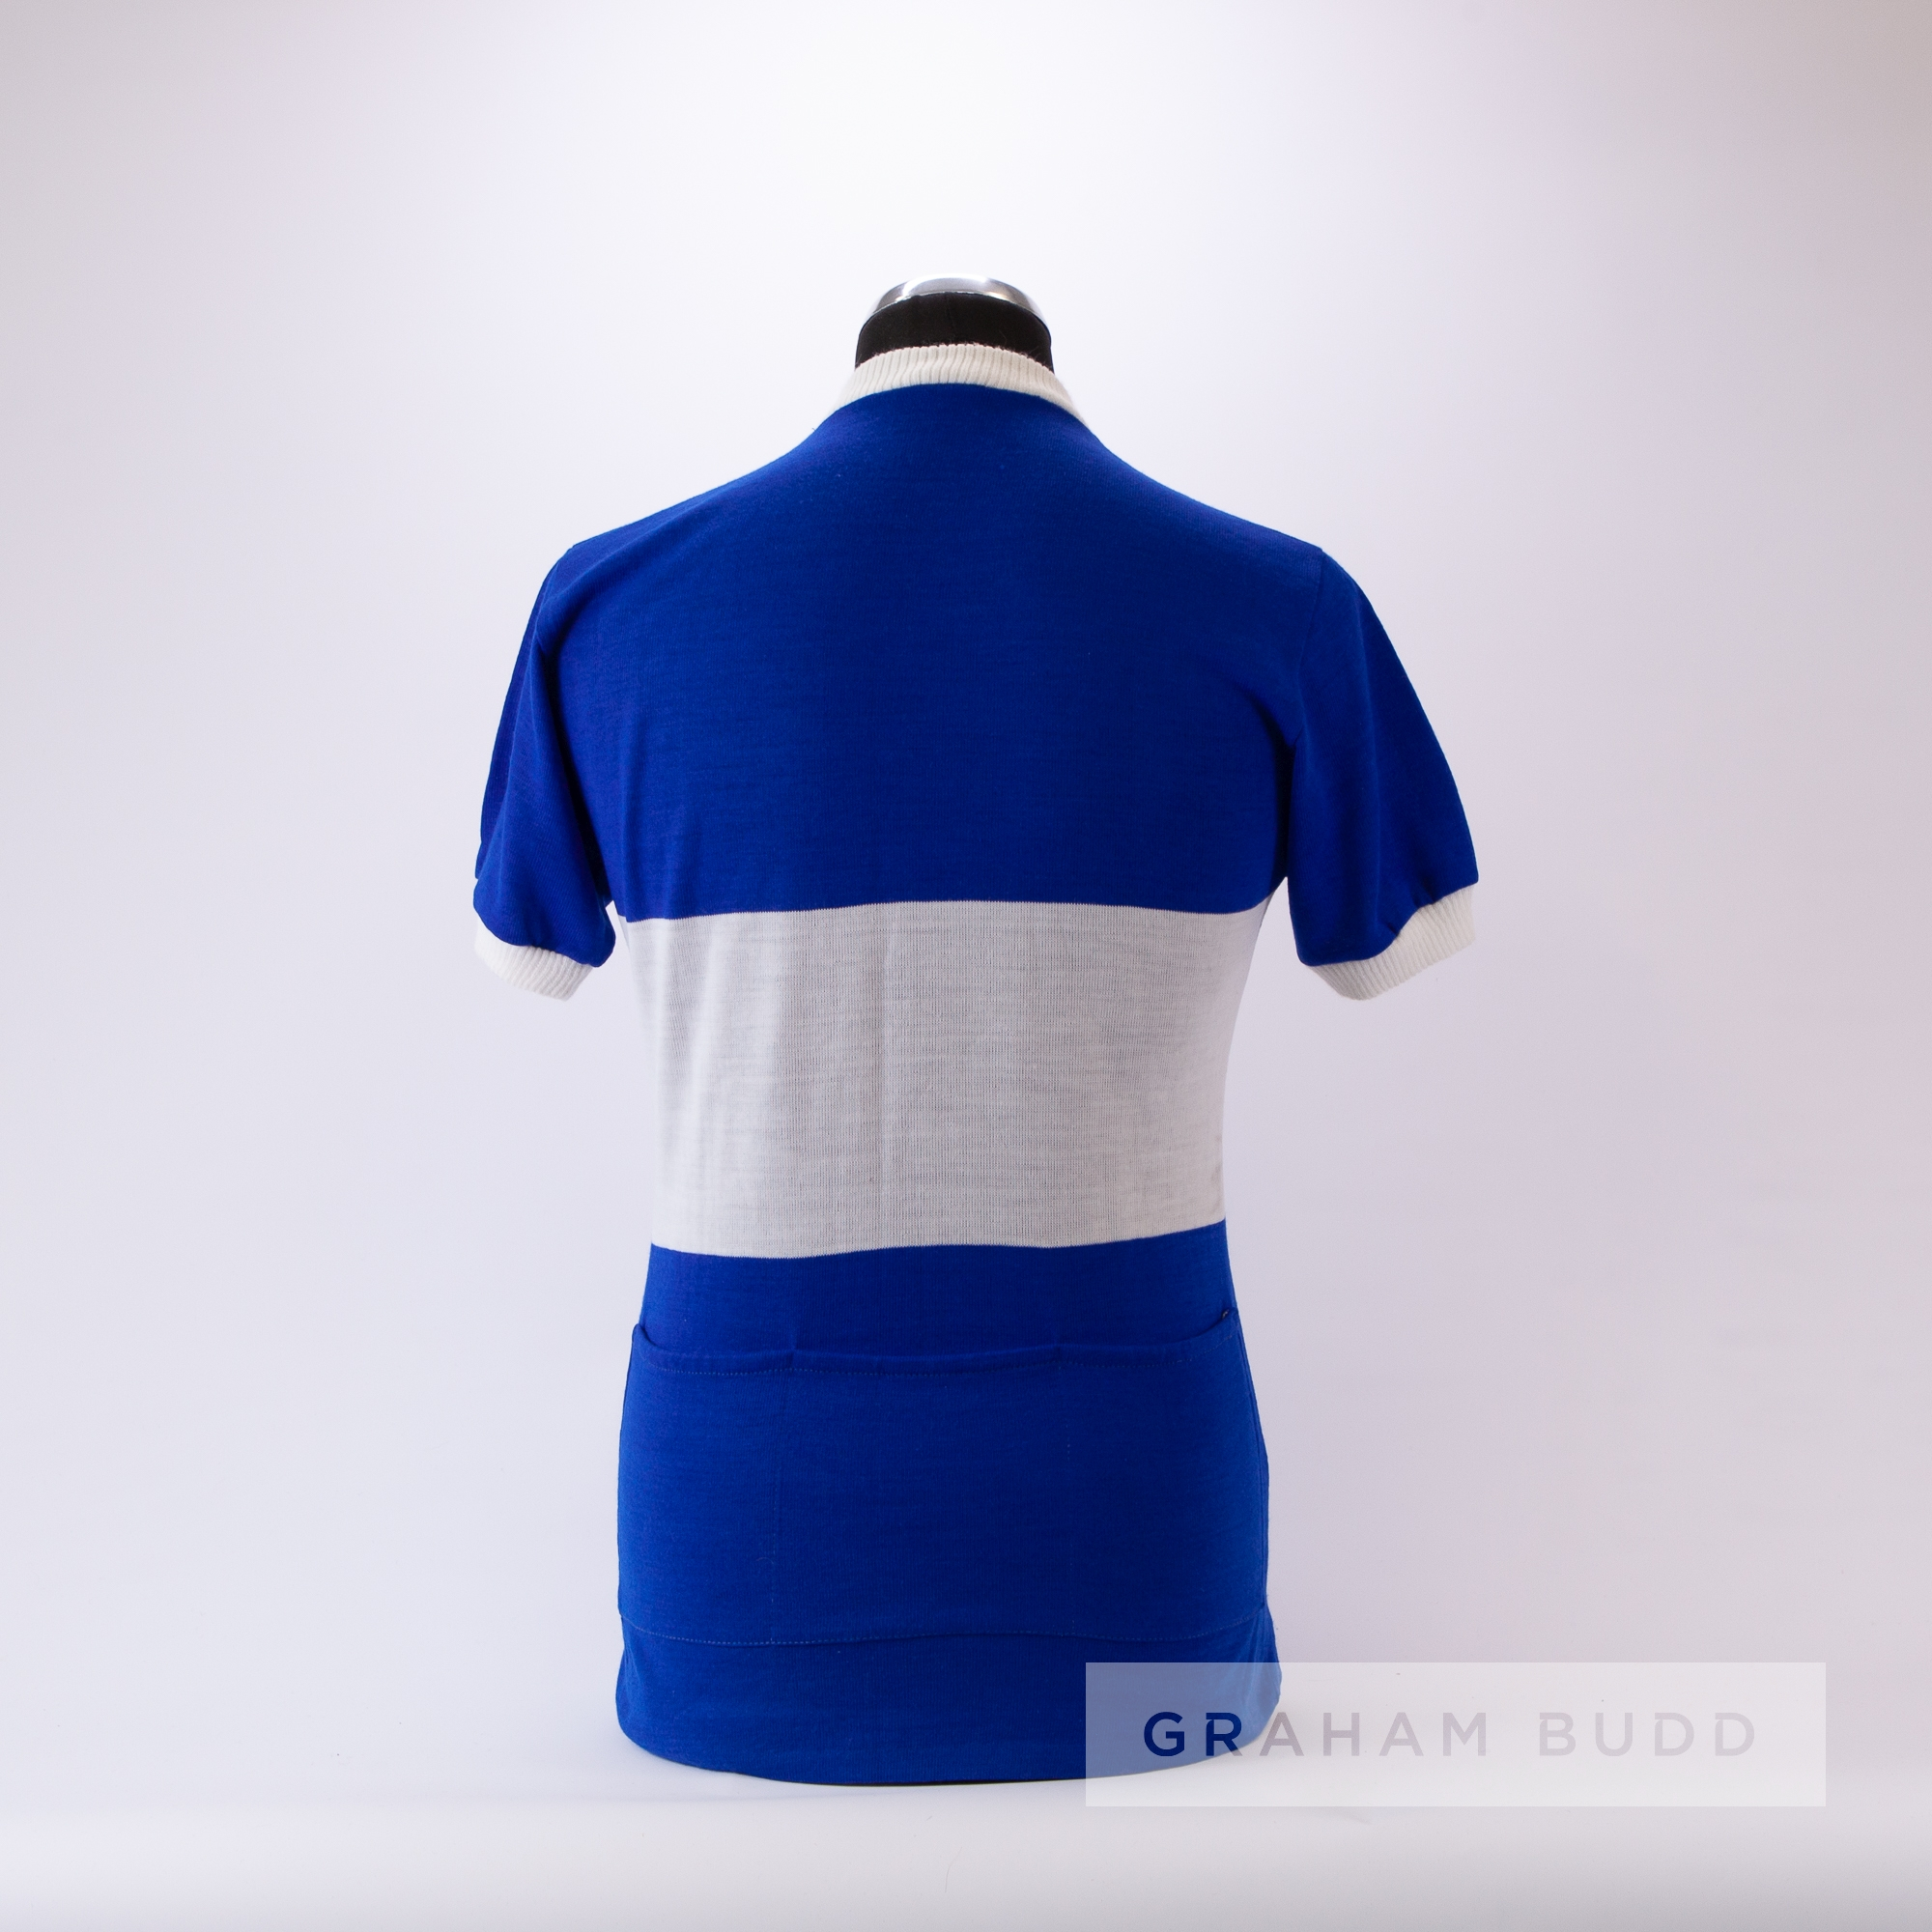 1985 blue and white La Hutte Eroica Cycling team race/tour jersey, scarce, acrylic short-sleeved - Image 4 of 4